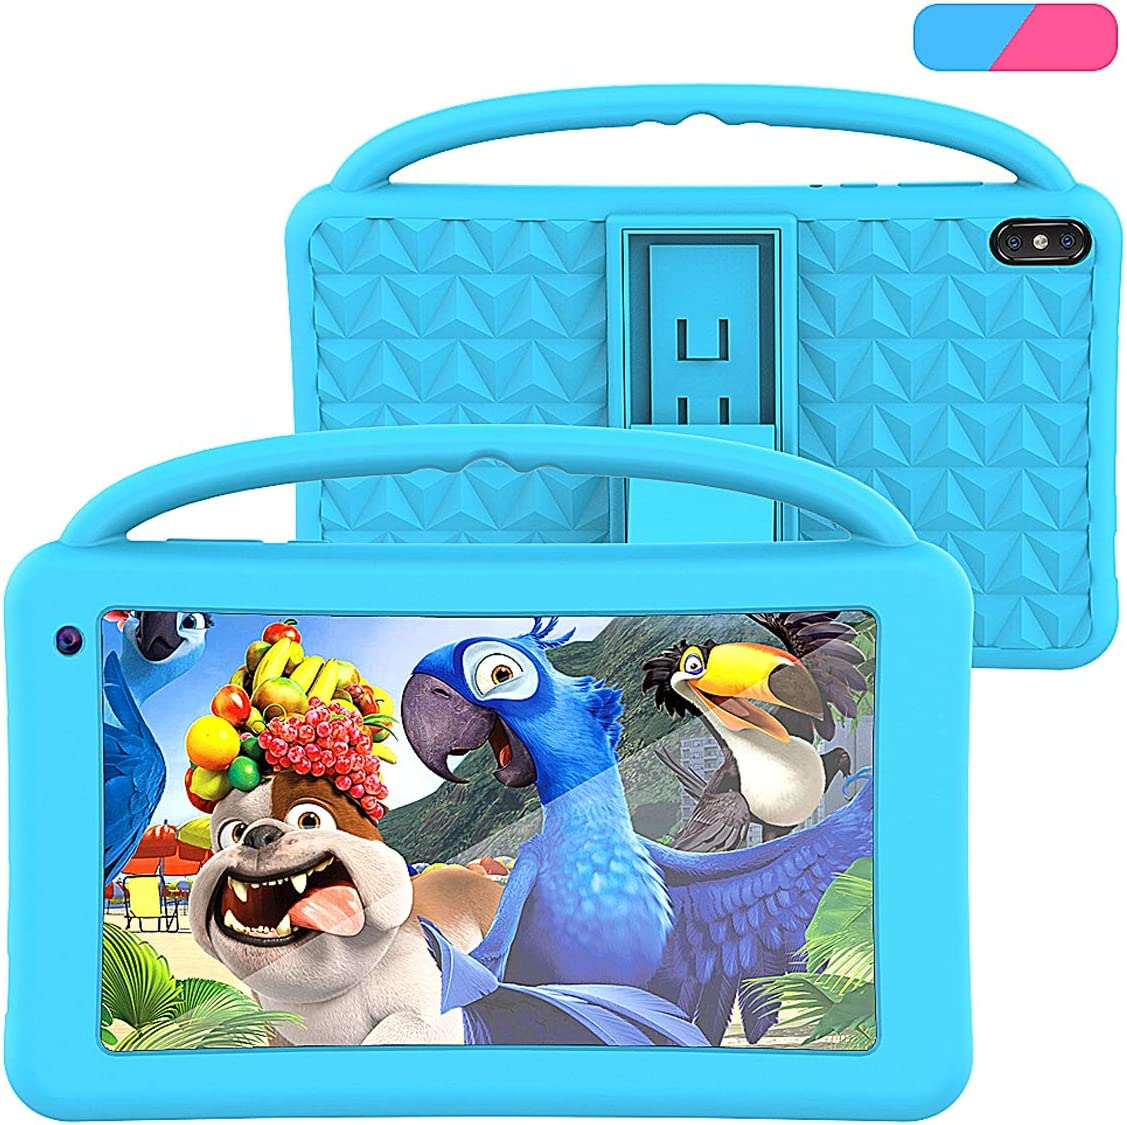 Kids Tablet 7 Inch IPS HD Display QuadCore Android 10.0 Pie Tablet PC for Kids GMS Certificated Dual Cameras 2GB RAM 32GB ROM WiFi with Handheld Kids-Proof Silicon Case for Kids Educational Blue